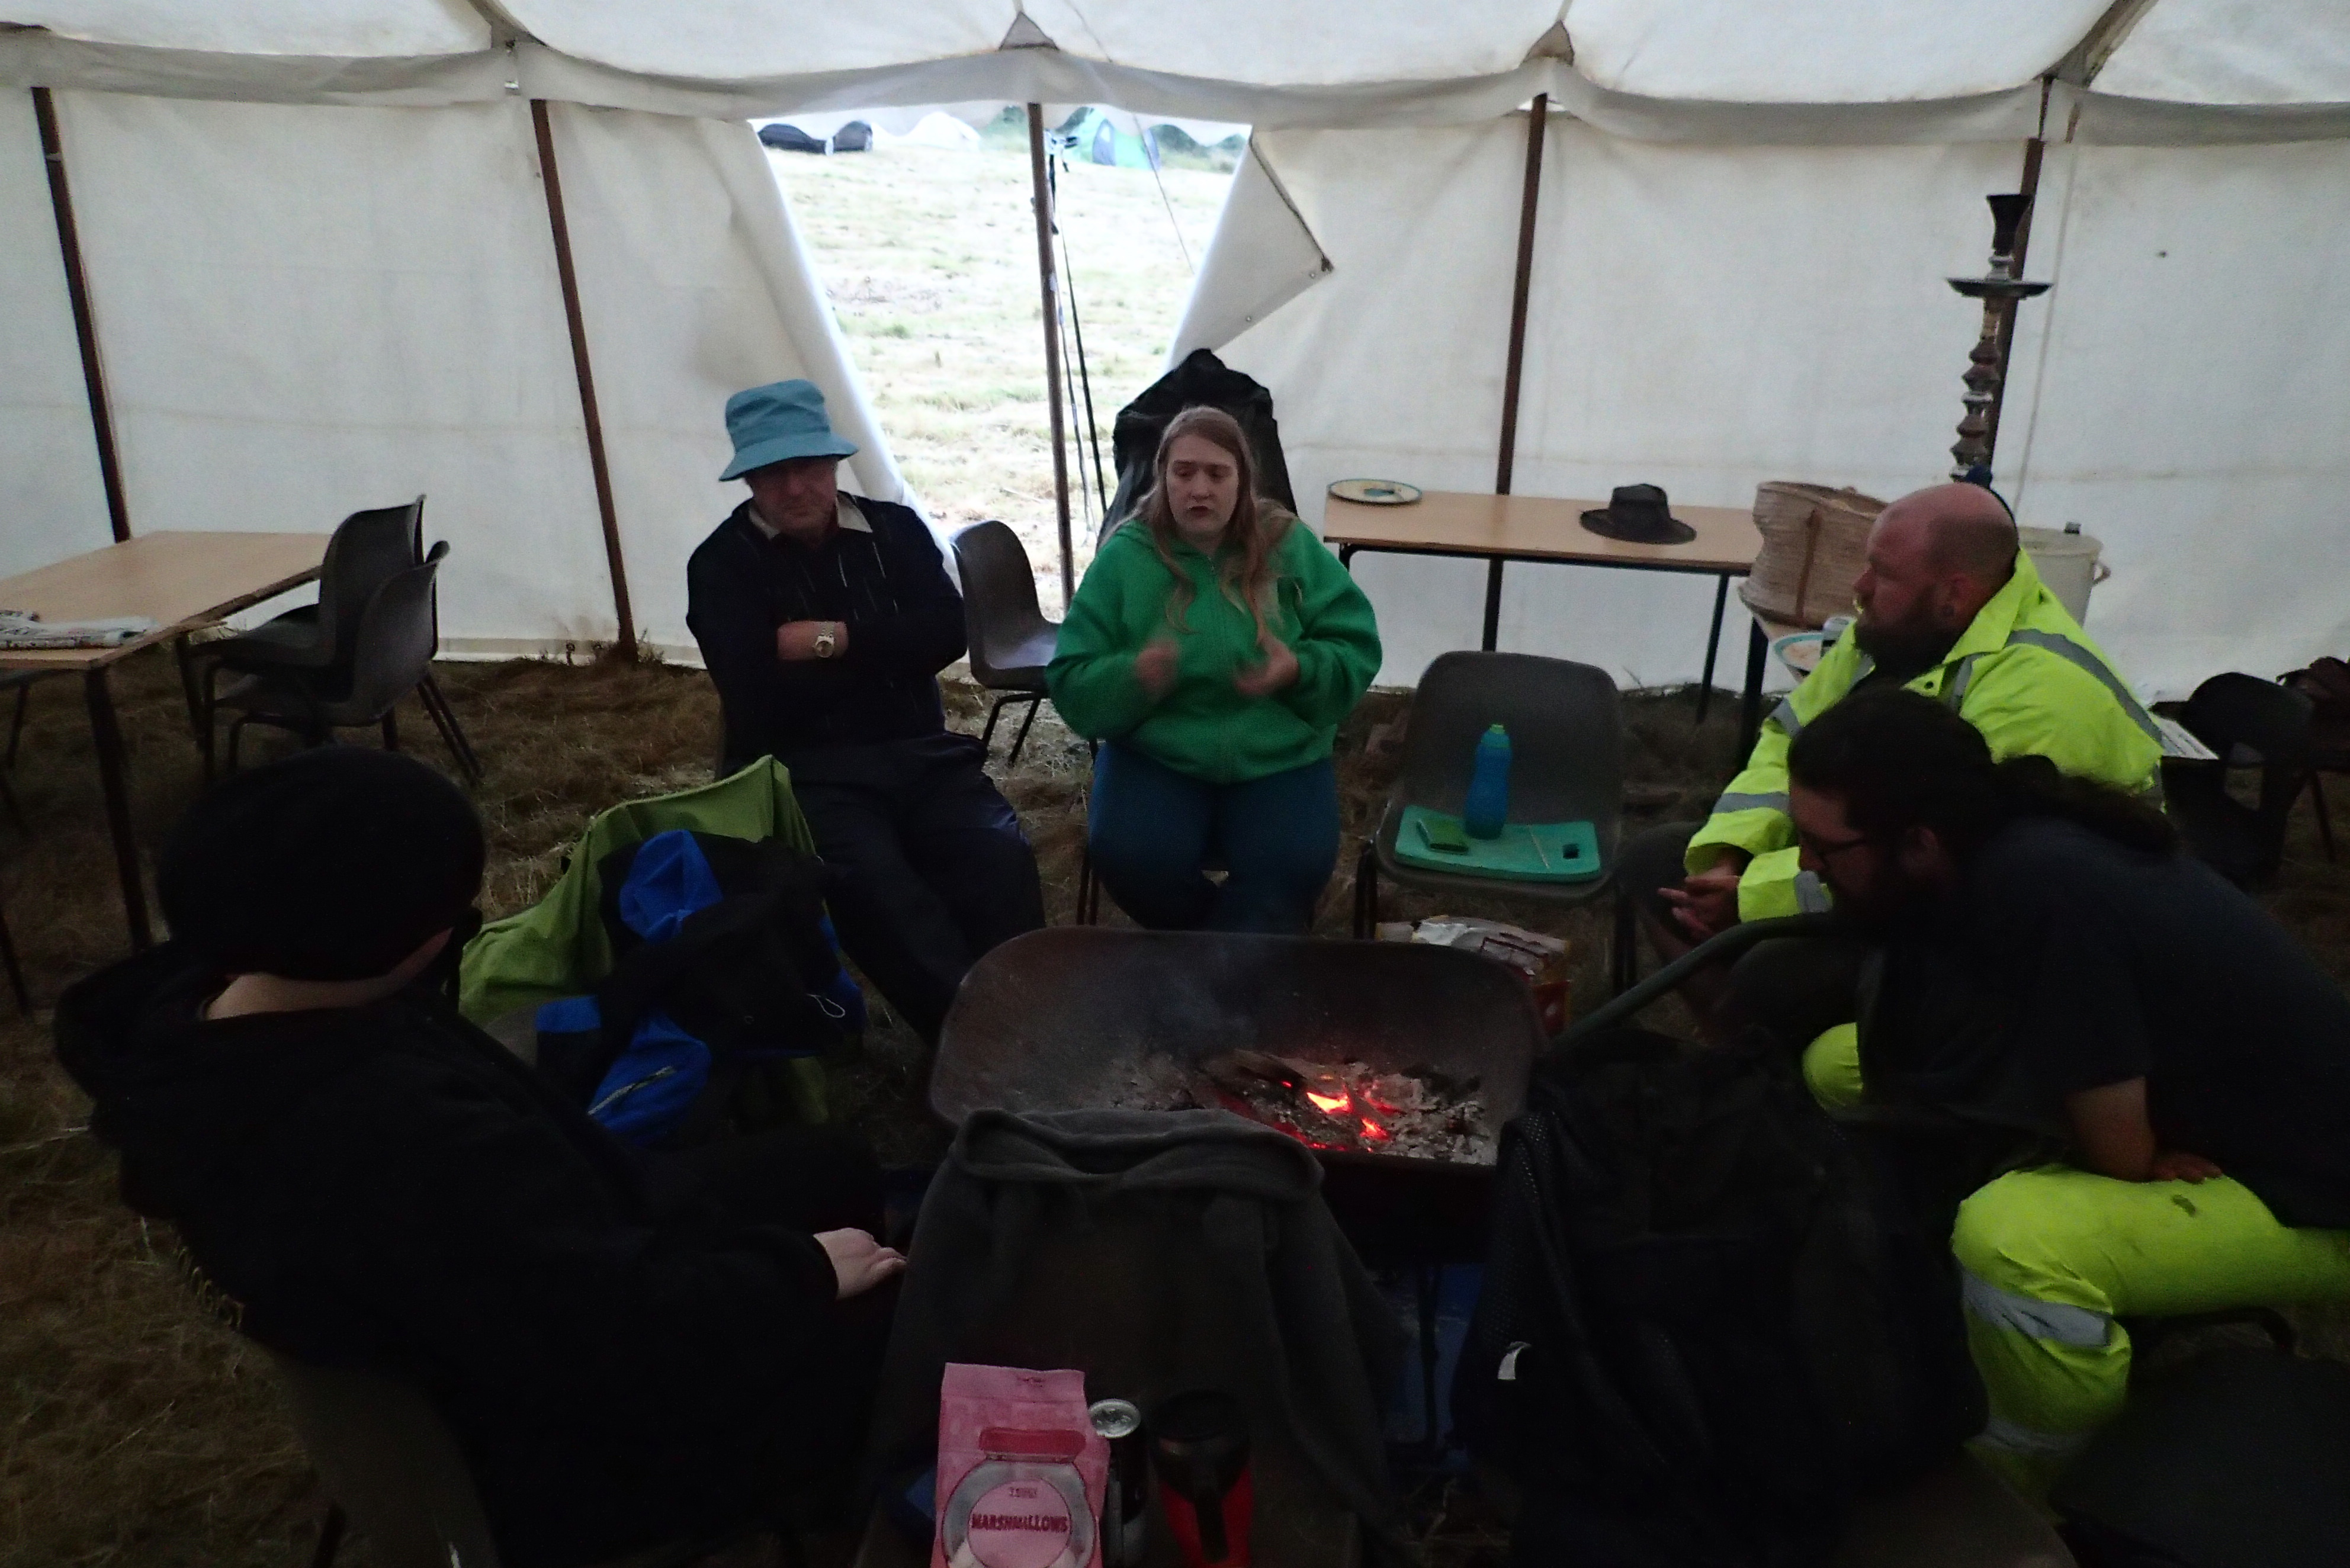 Wednesday: keeping warm with fireside chat and marshmallows